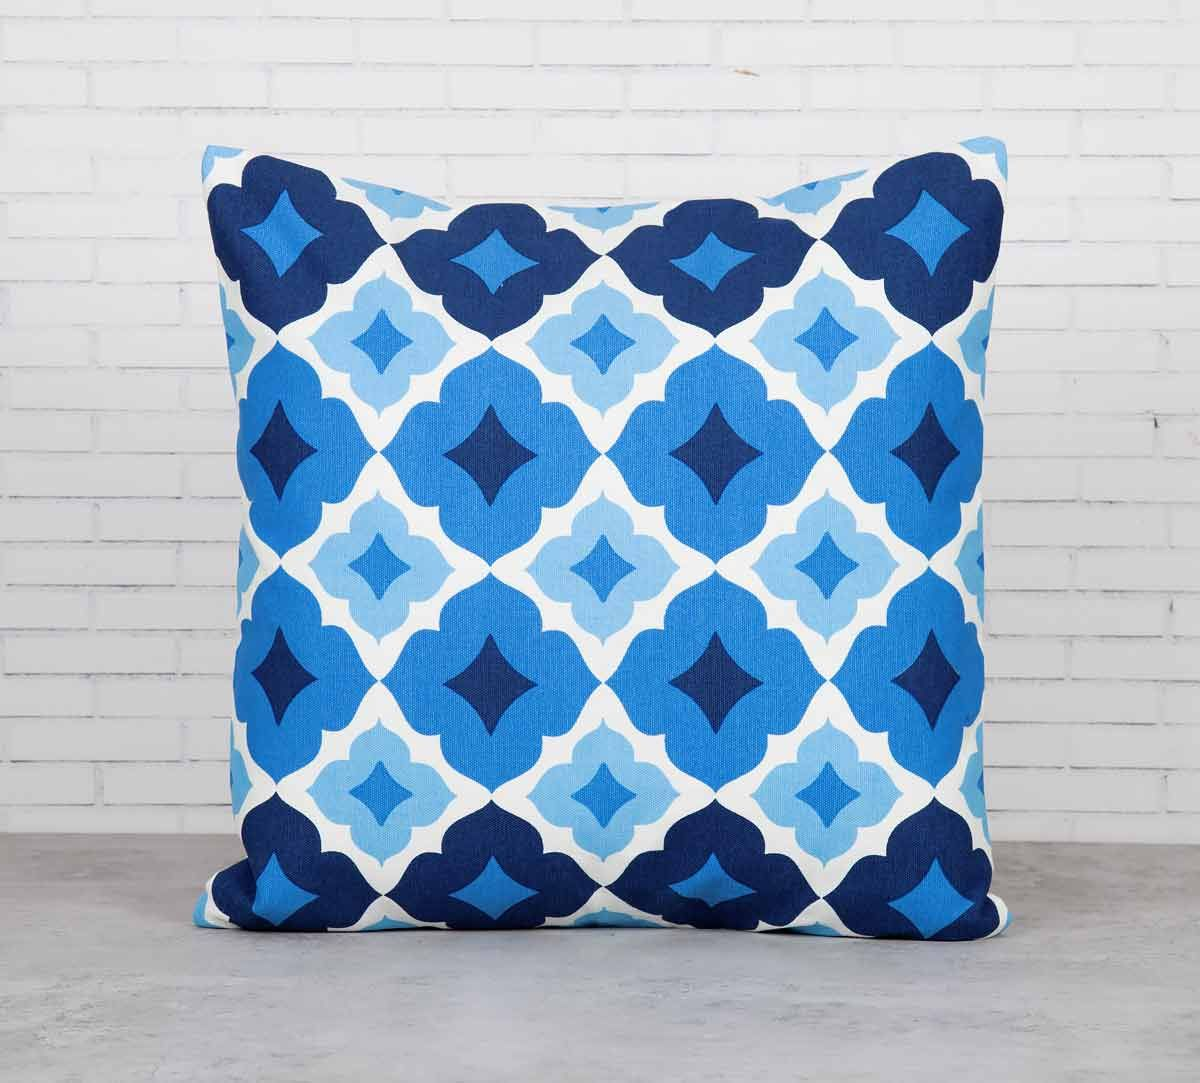 India Circus Ultramarine Tracery Sapphire Cotton Cushion Cover